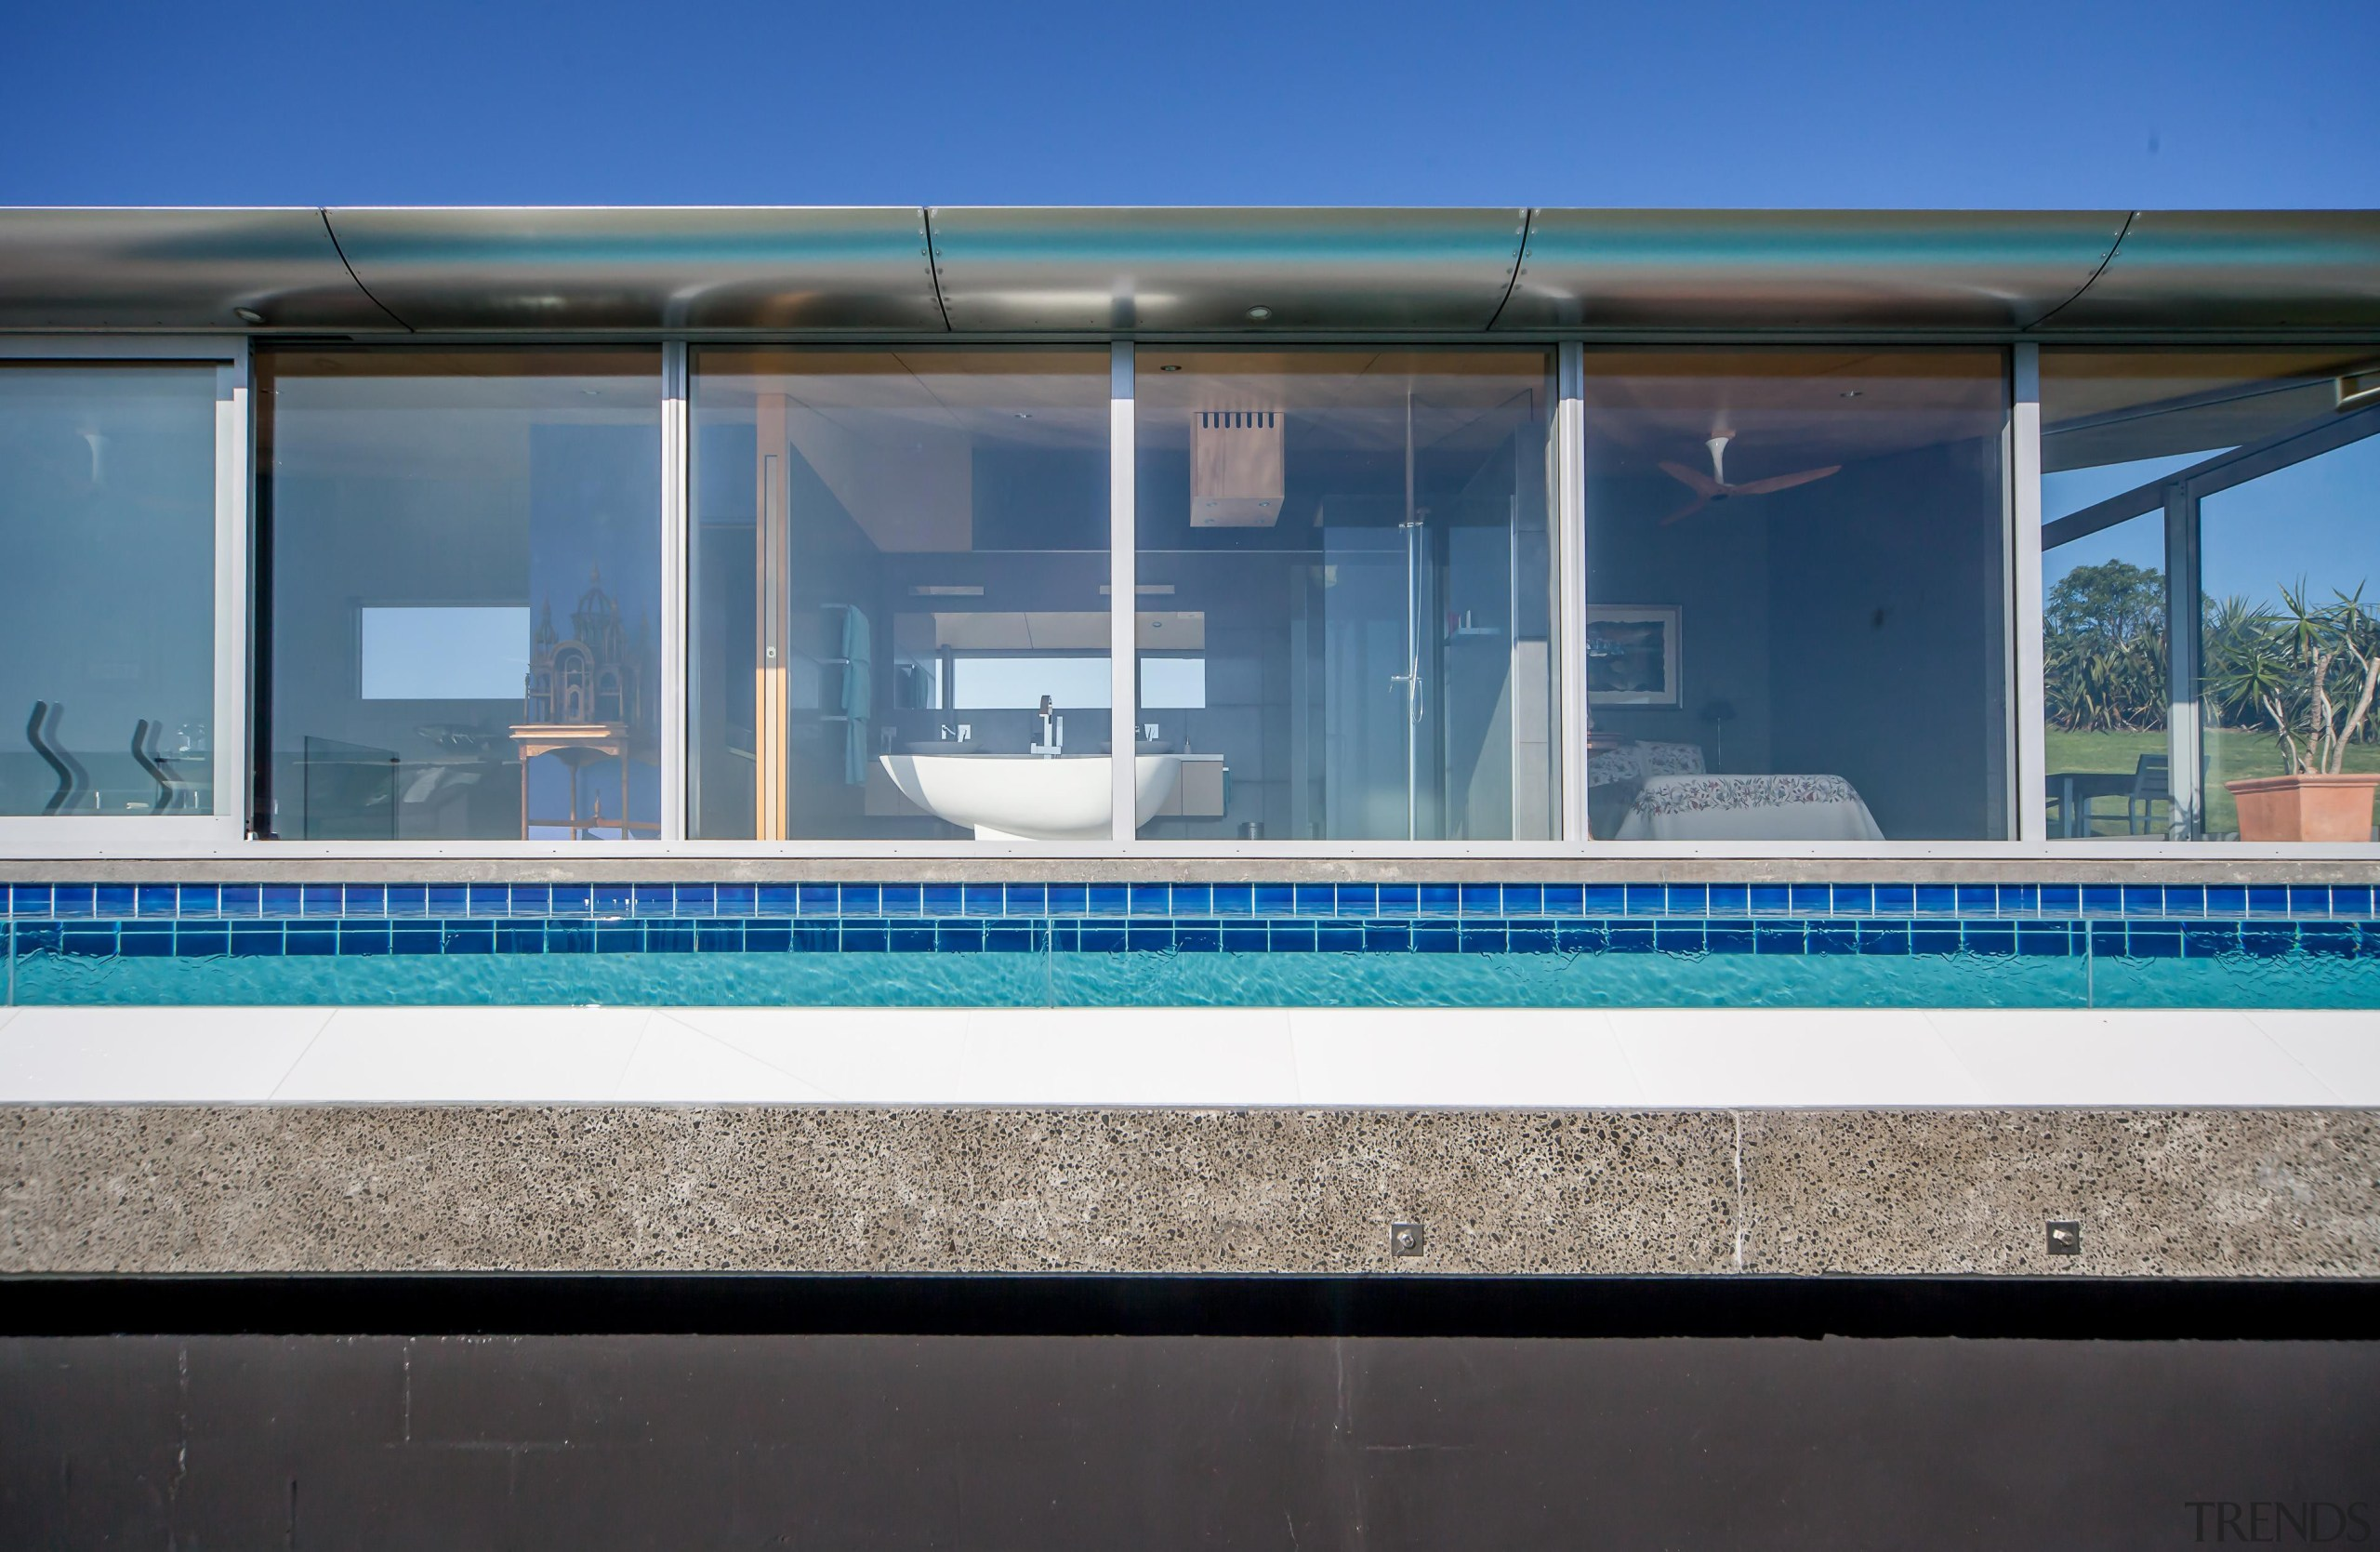 Capturing the spectacular views was a priority for architecture, facade, glass, house, real estate, window